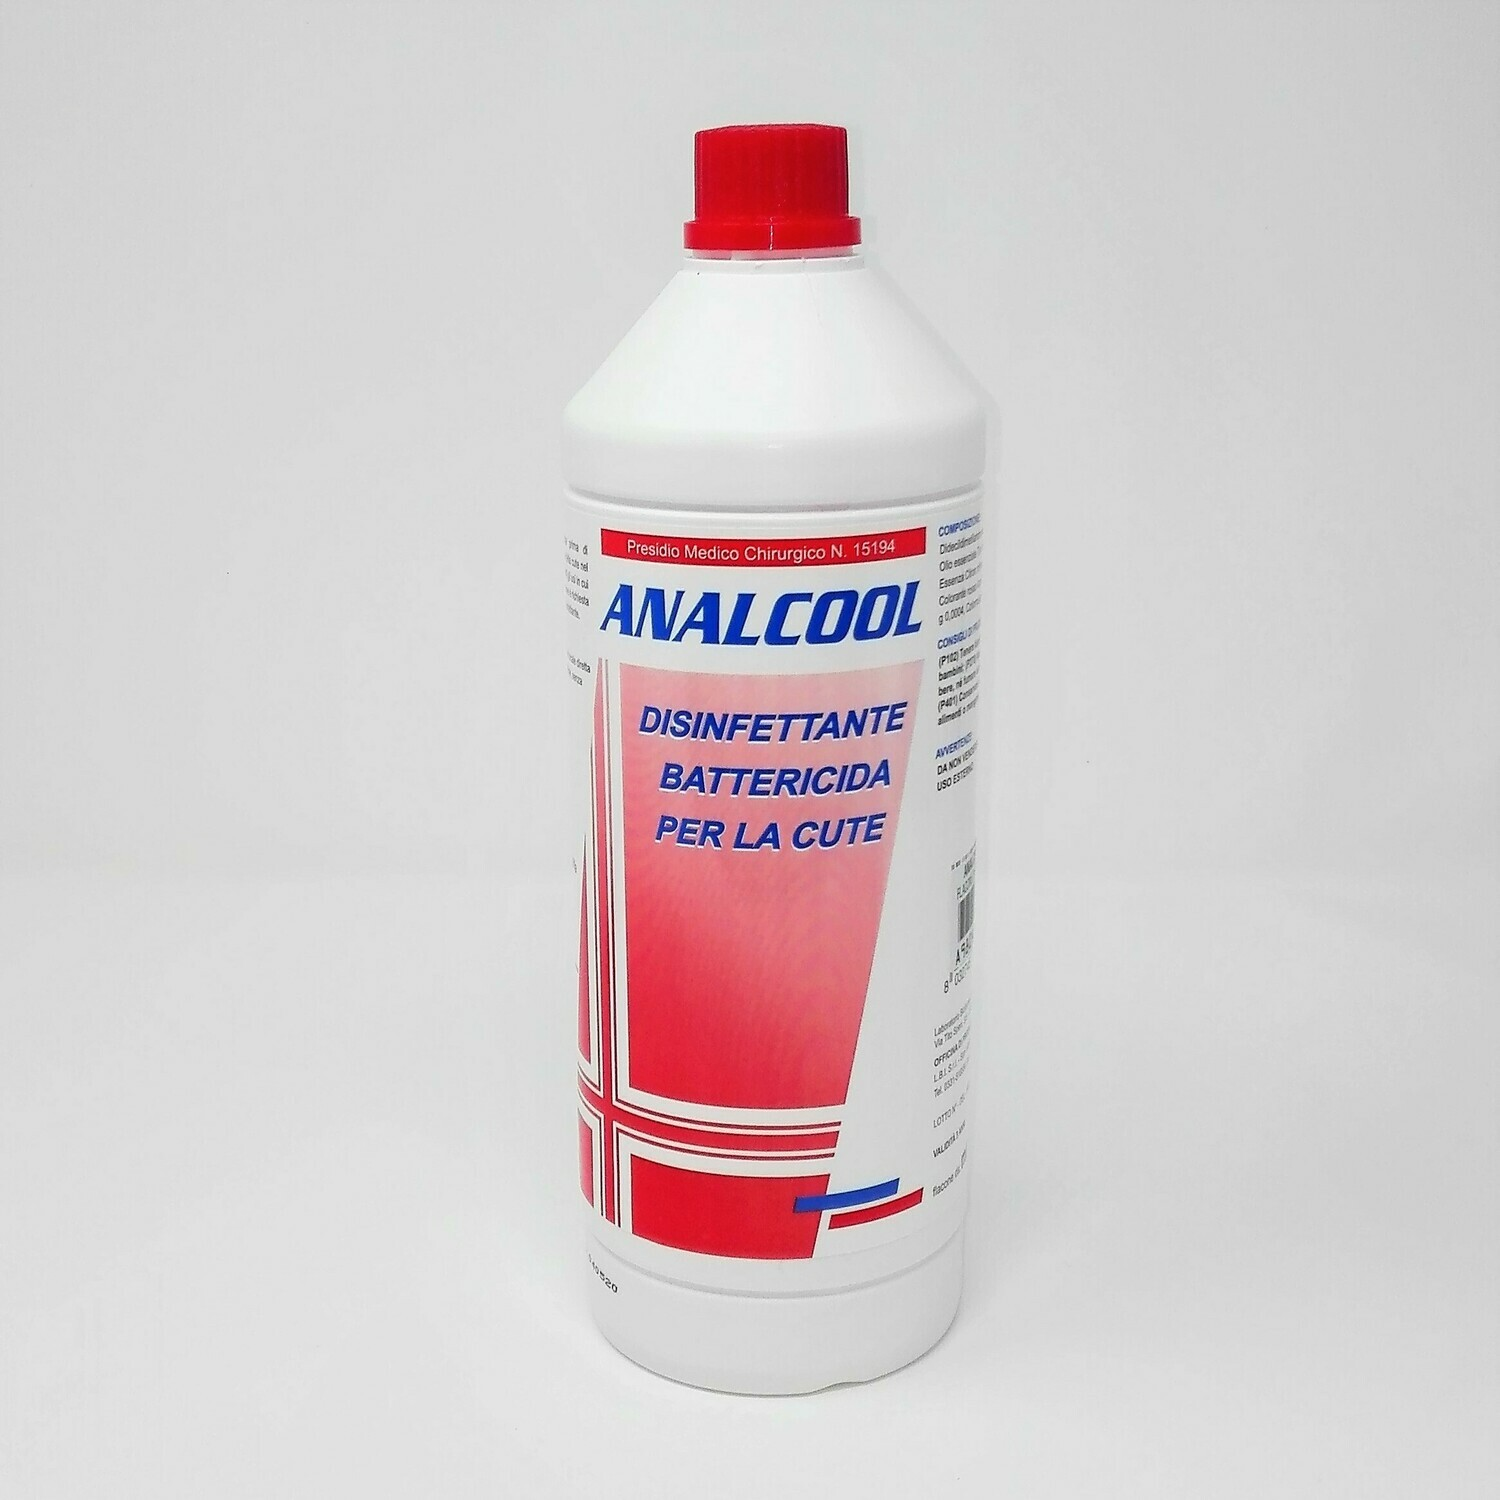 ANALCOOL 1 LT.